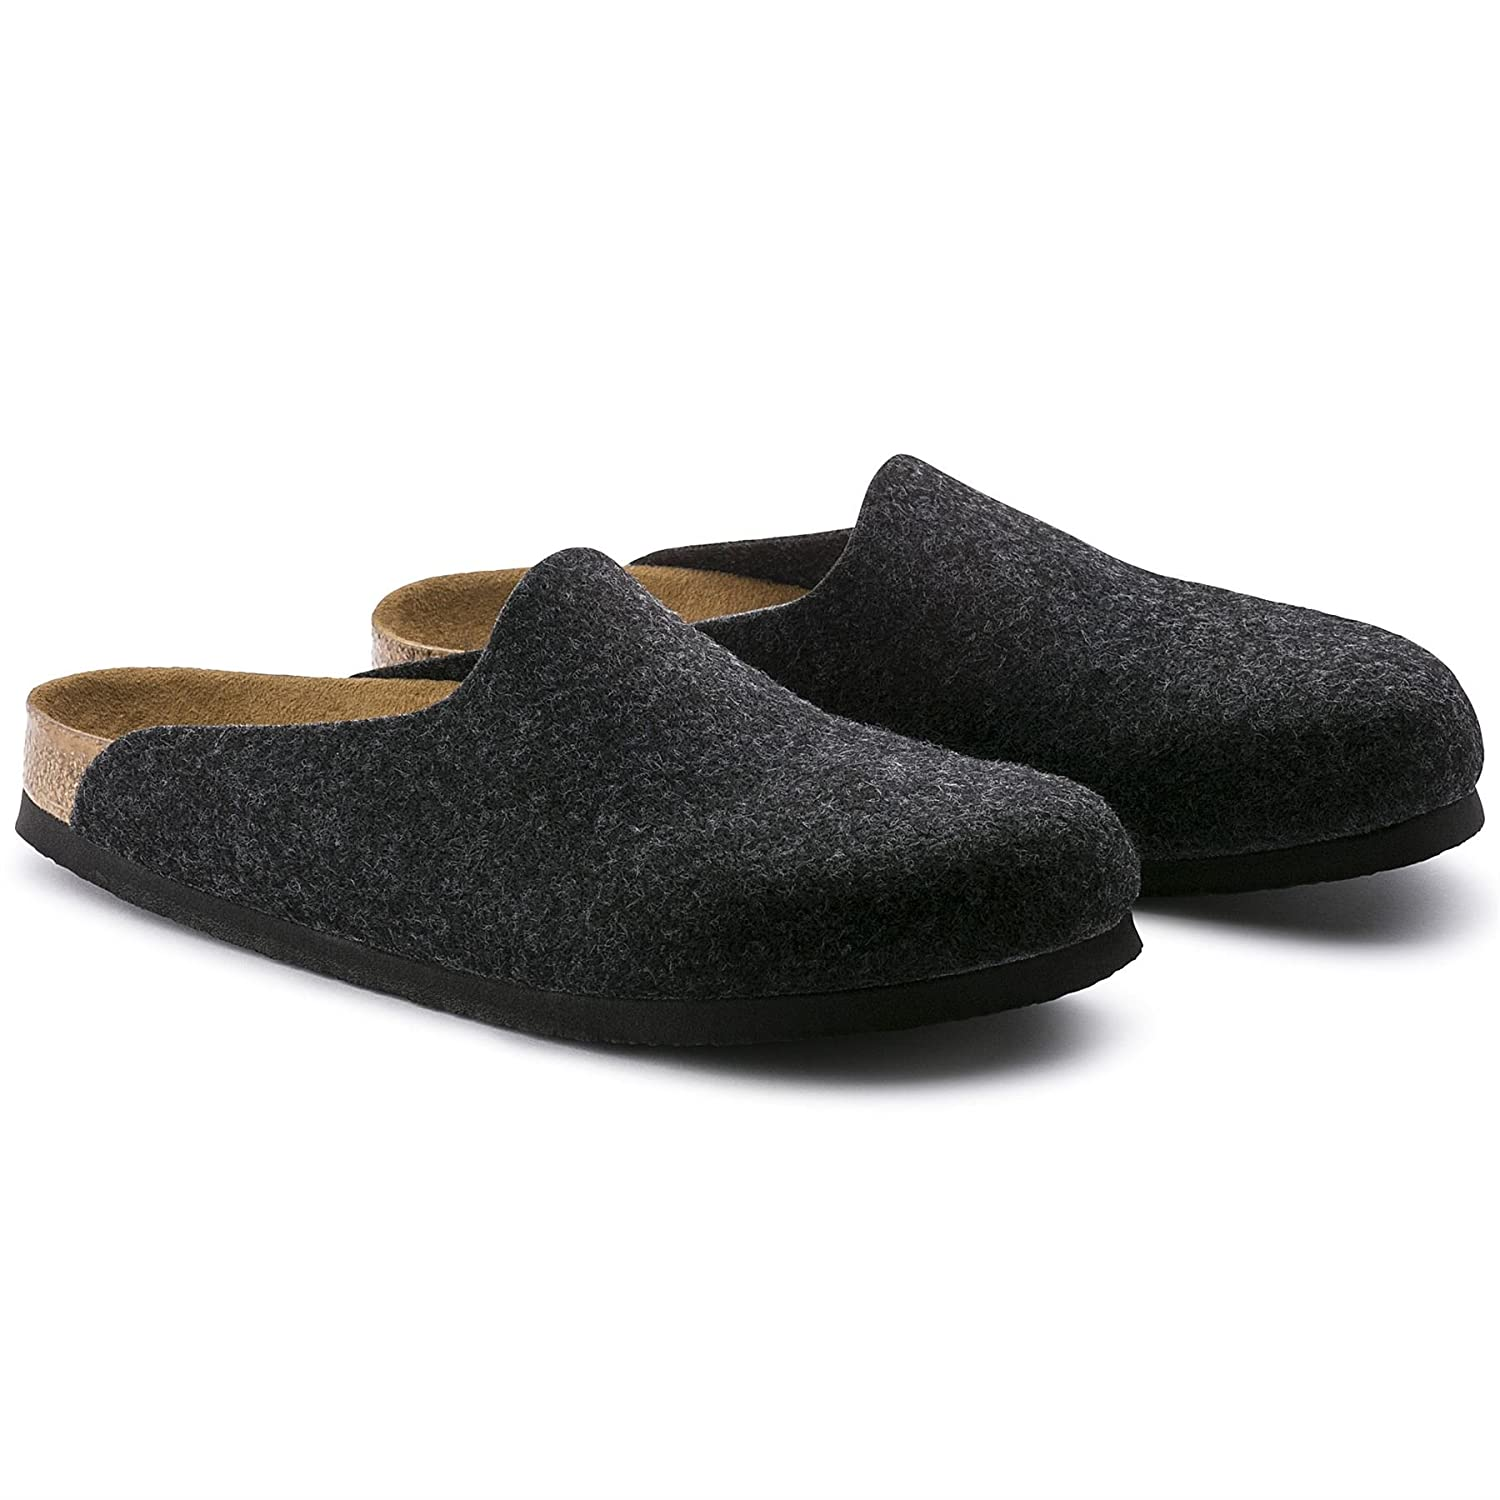 d560ca7bf443 Birkenstock Amsterdam Wool Felt Clog Sandals Anthracite Shoes Mules  Footwear  Amazon.co.uk  Clothing